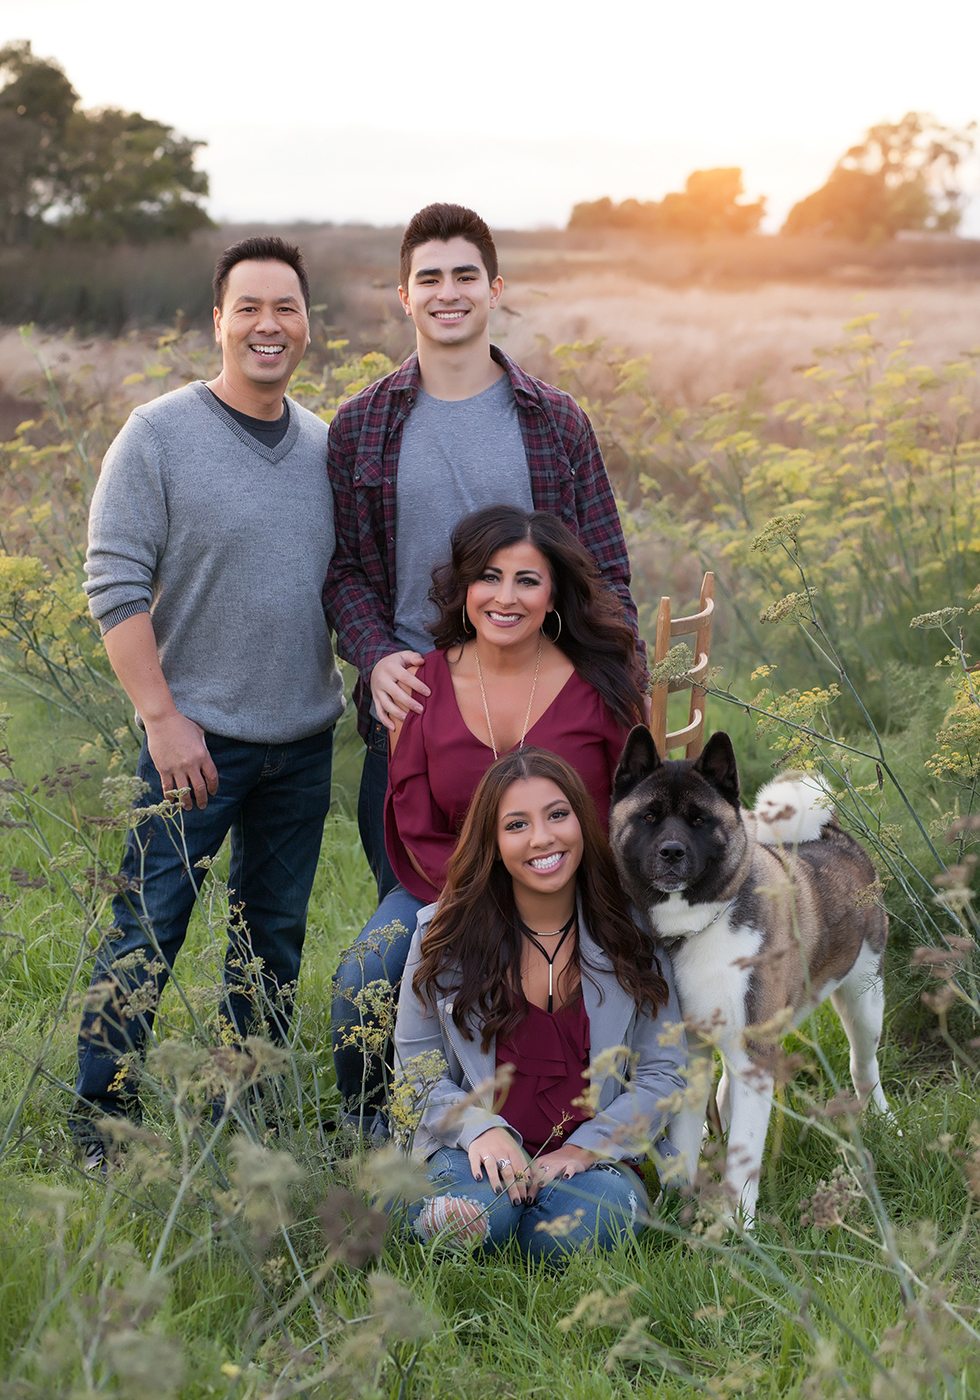 IMG_0256_flowers_field_family_portrait_senior_dog_San_Ramon_Cal_high_family_gretchen-adams-photography.jpg